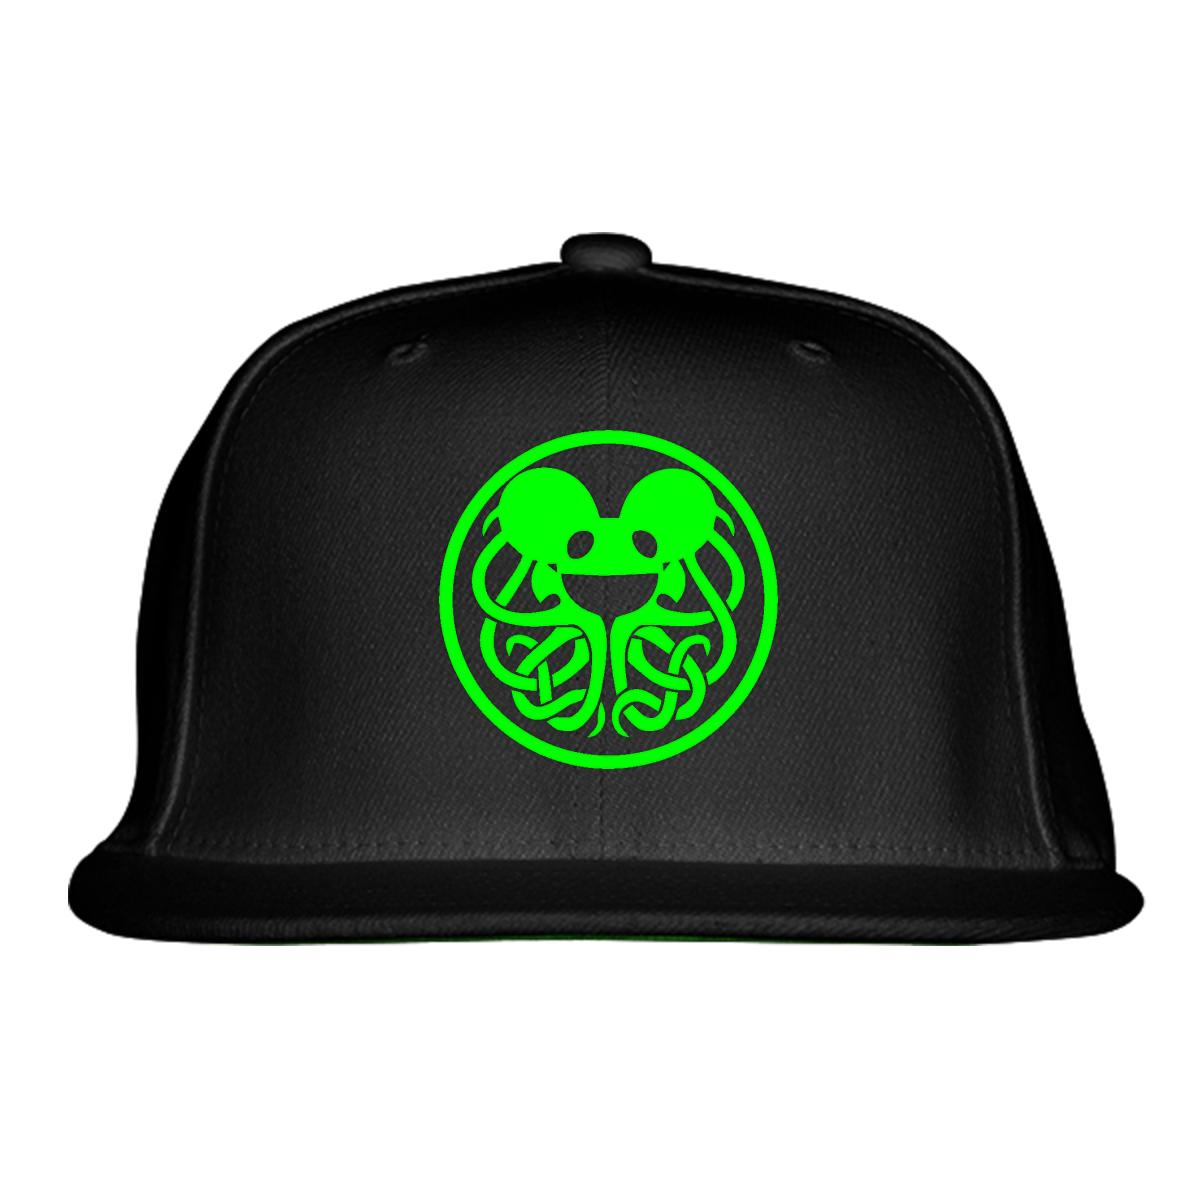 b32677b219f Deadmau snapback hat embroidered jpg 1200x1200 Deadmau5 green hat